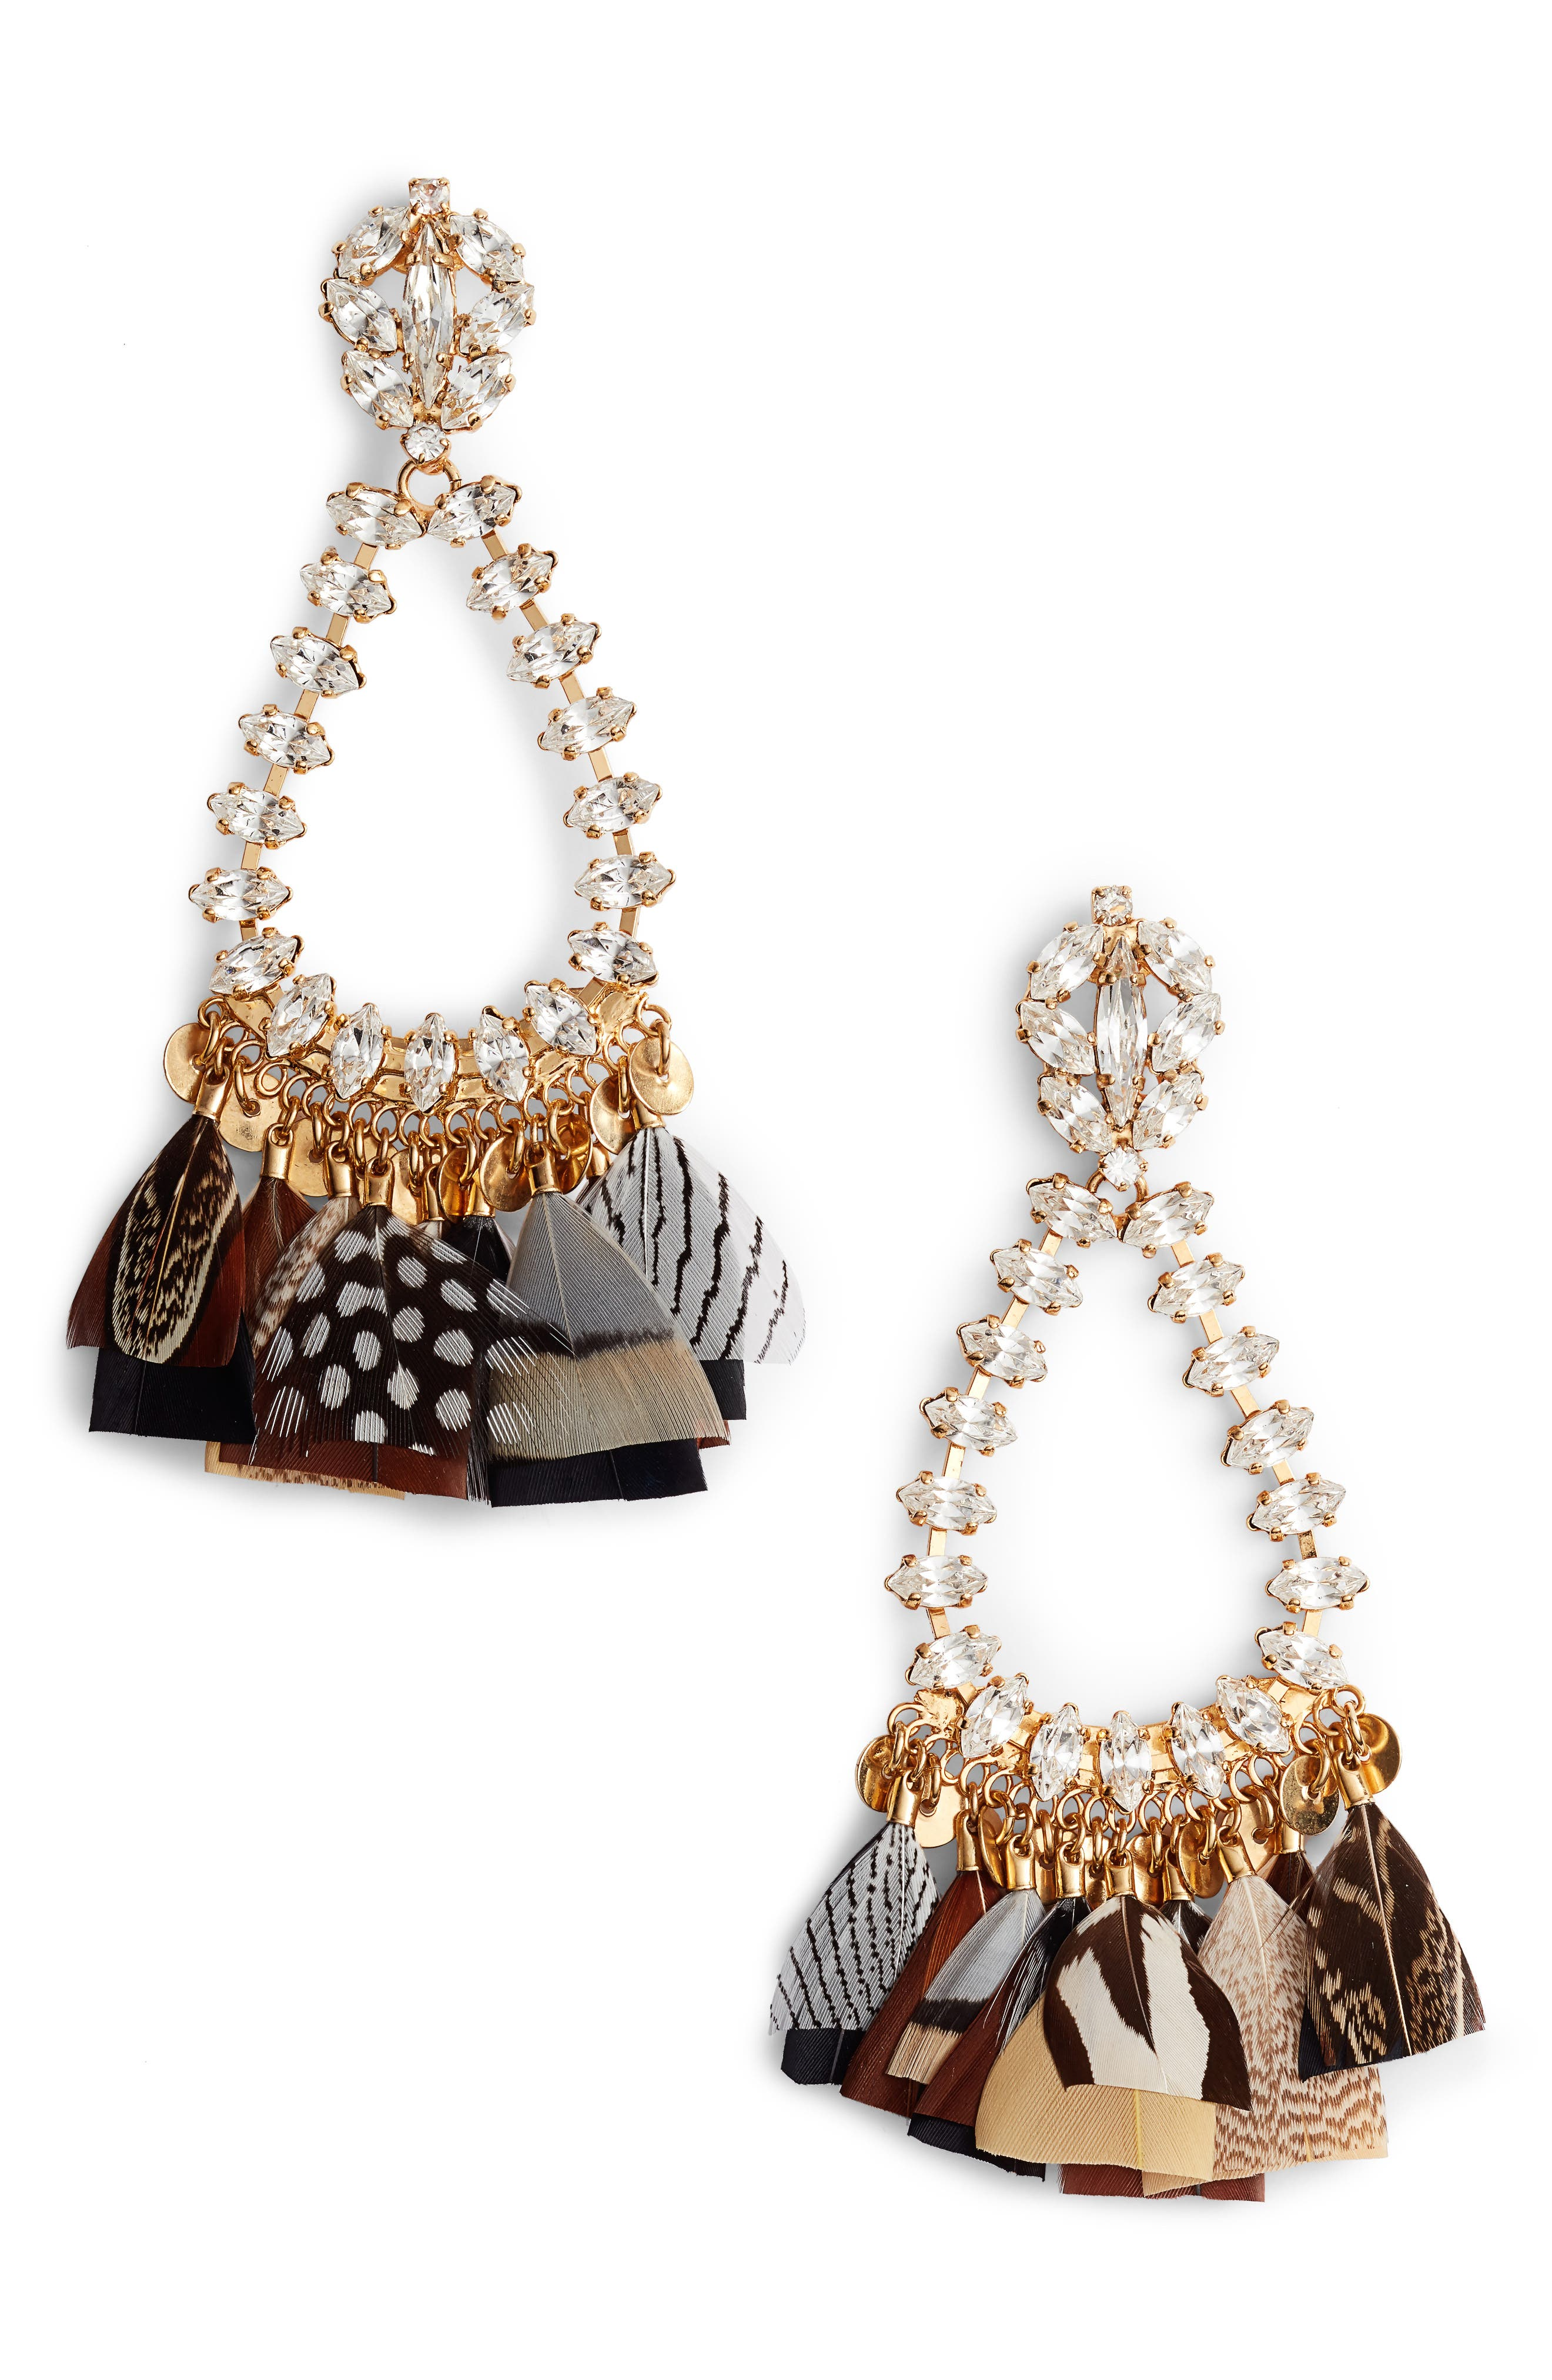 Riviera Statement Earrings,                         Main,                         color, Black/ Gold